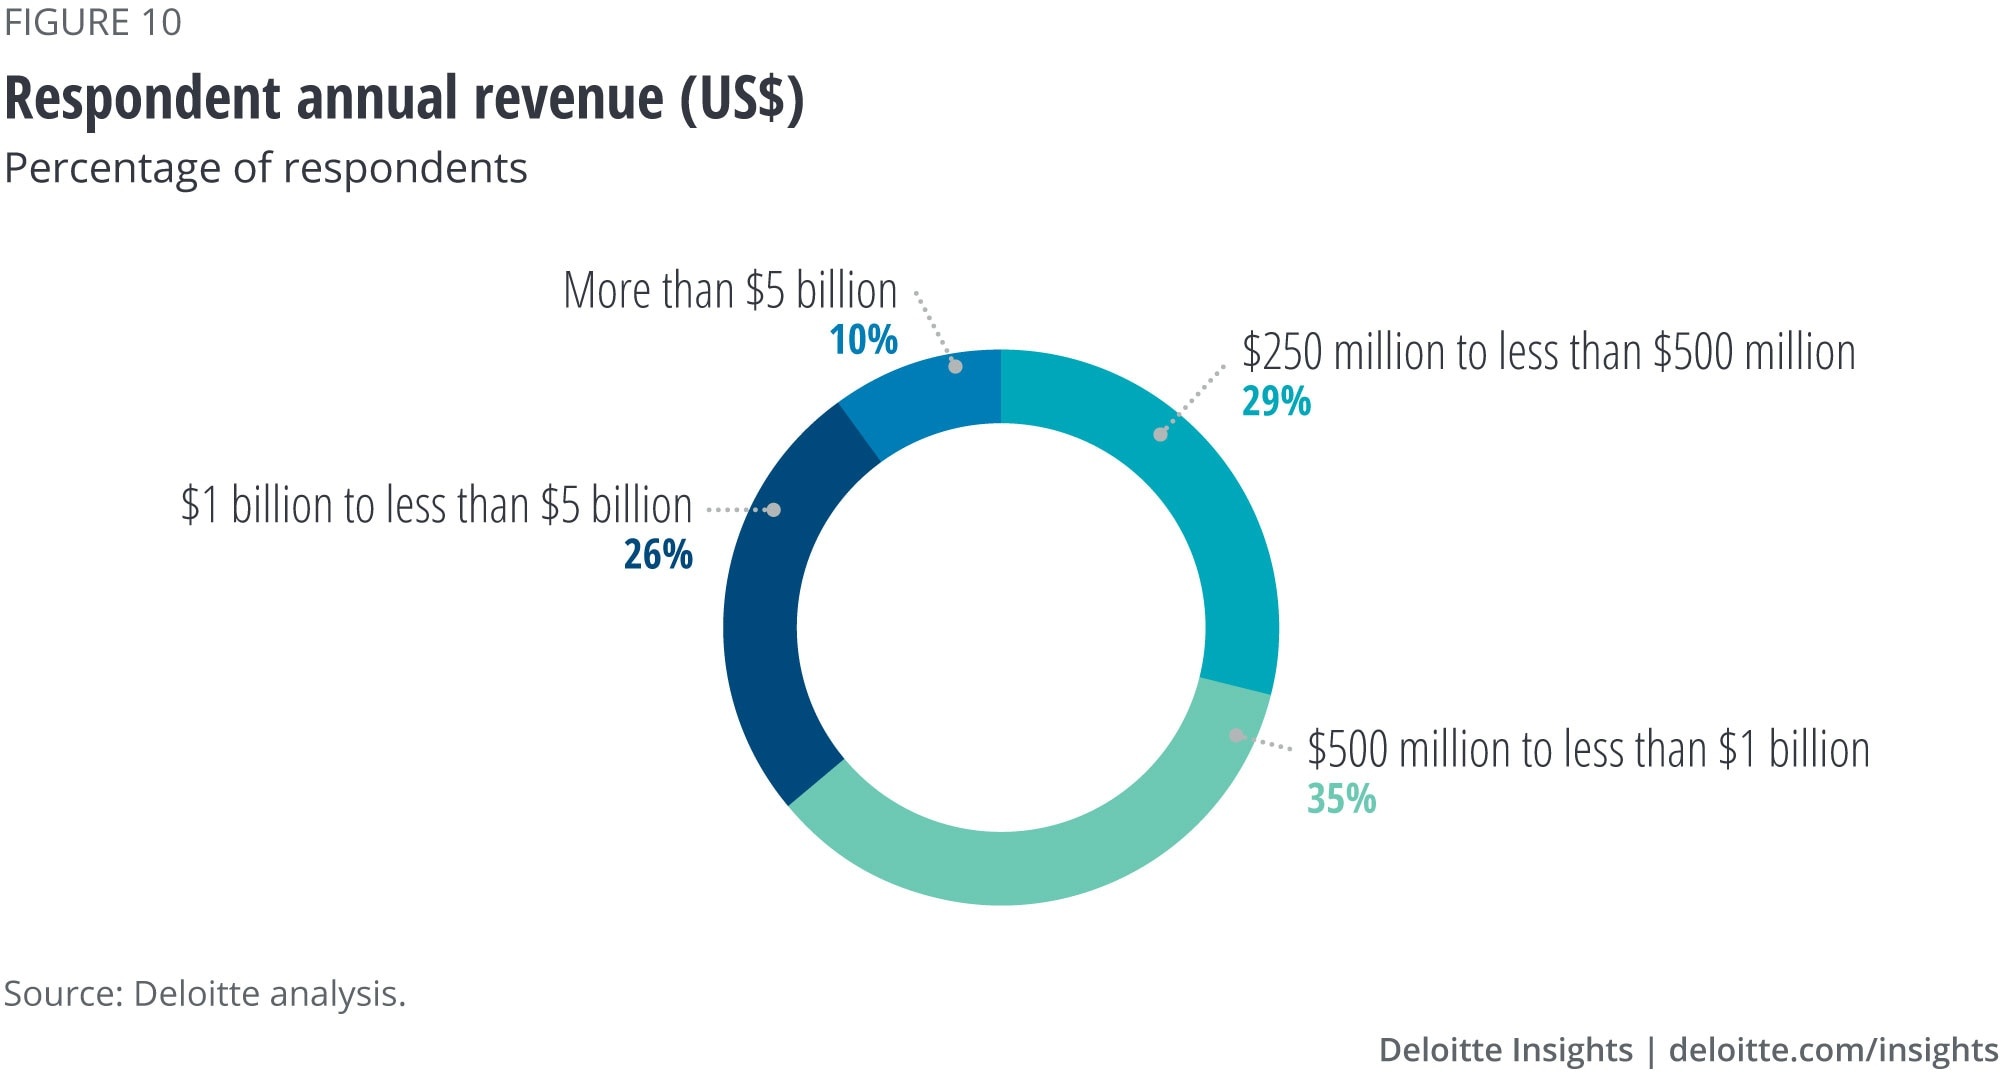 Respondents segmented by annual revenue